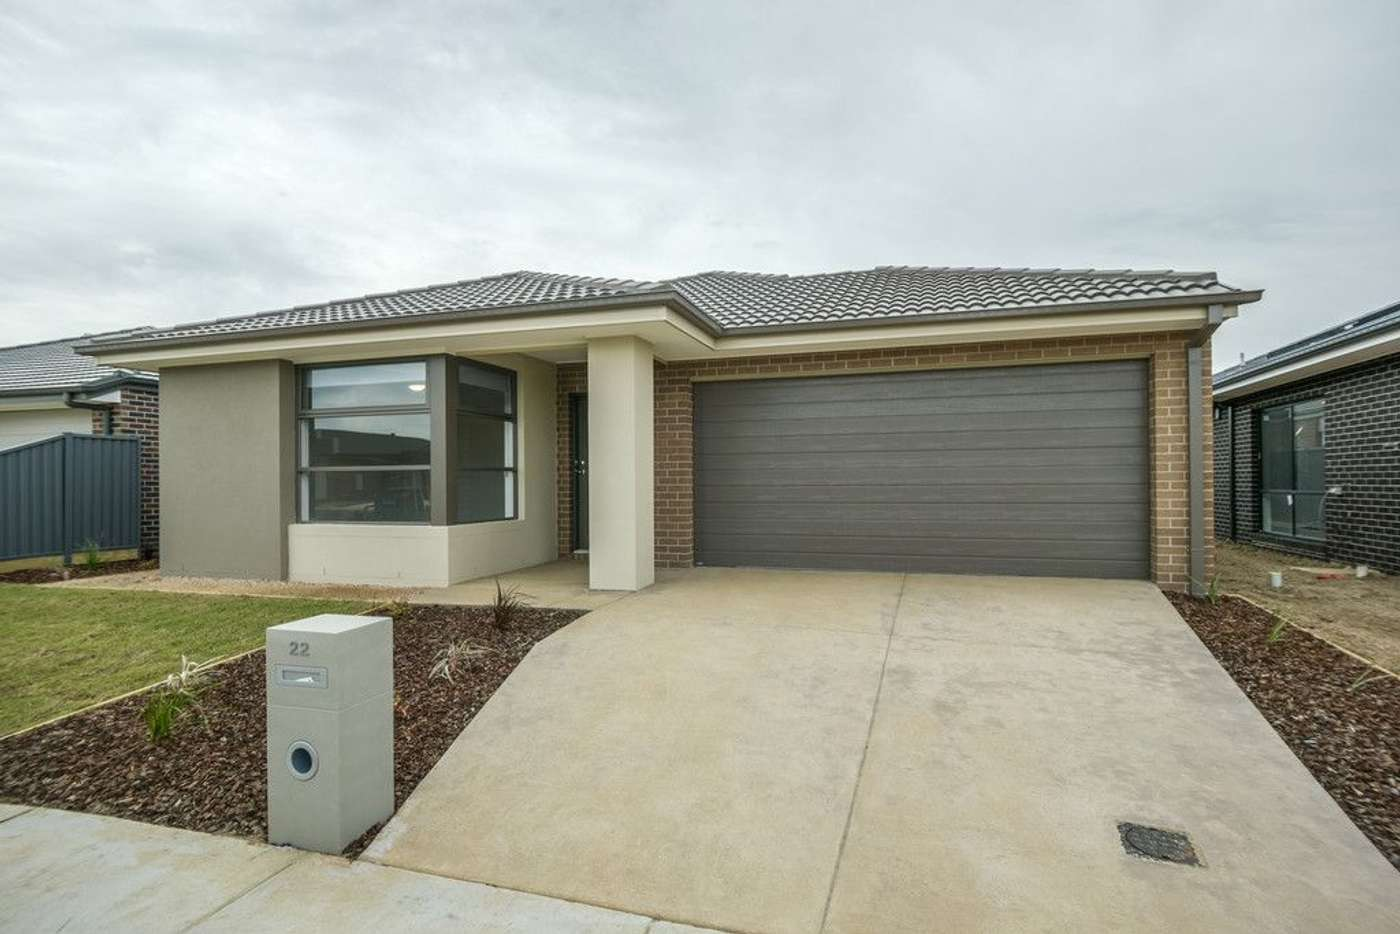 Main view of Homely house listing, 22 Wexford Street, Alfredton VIC 3350